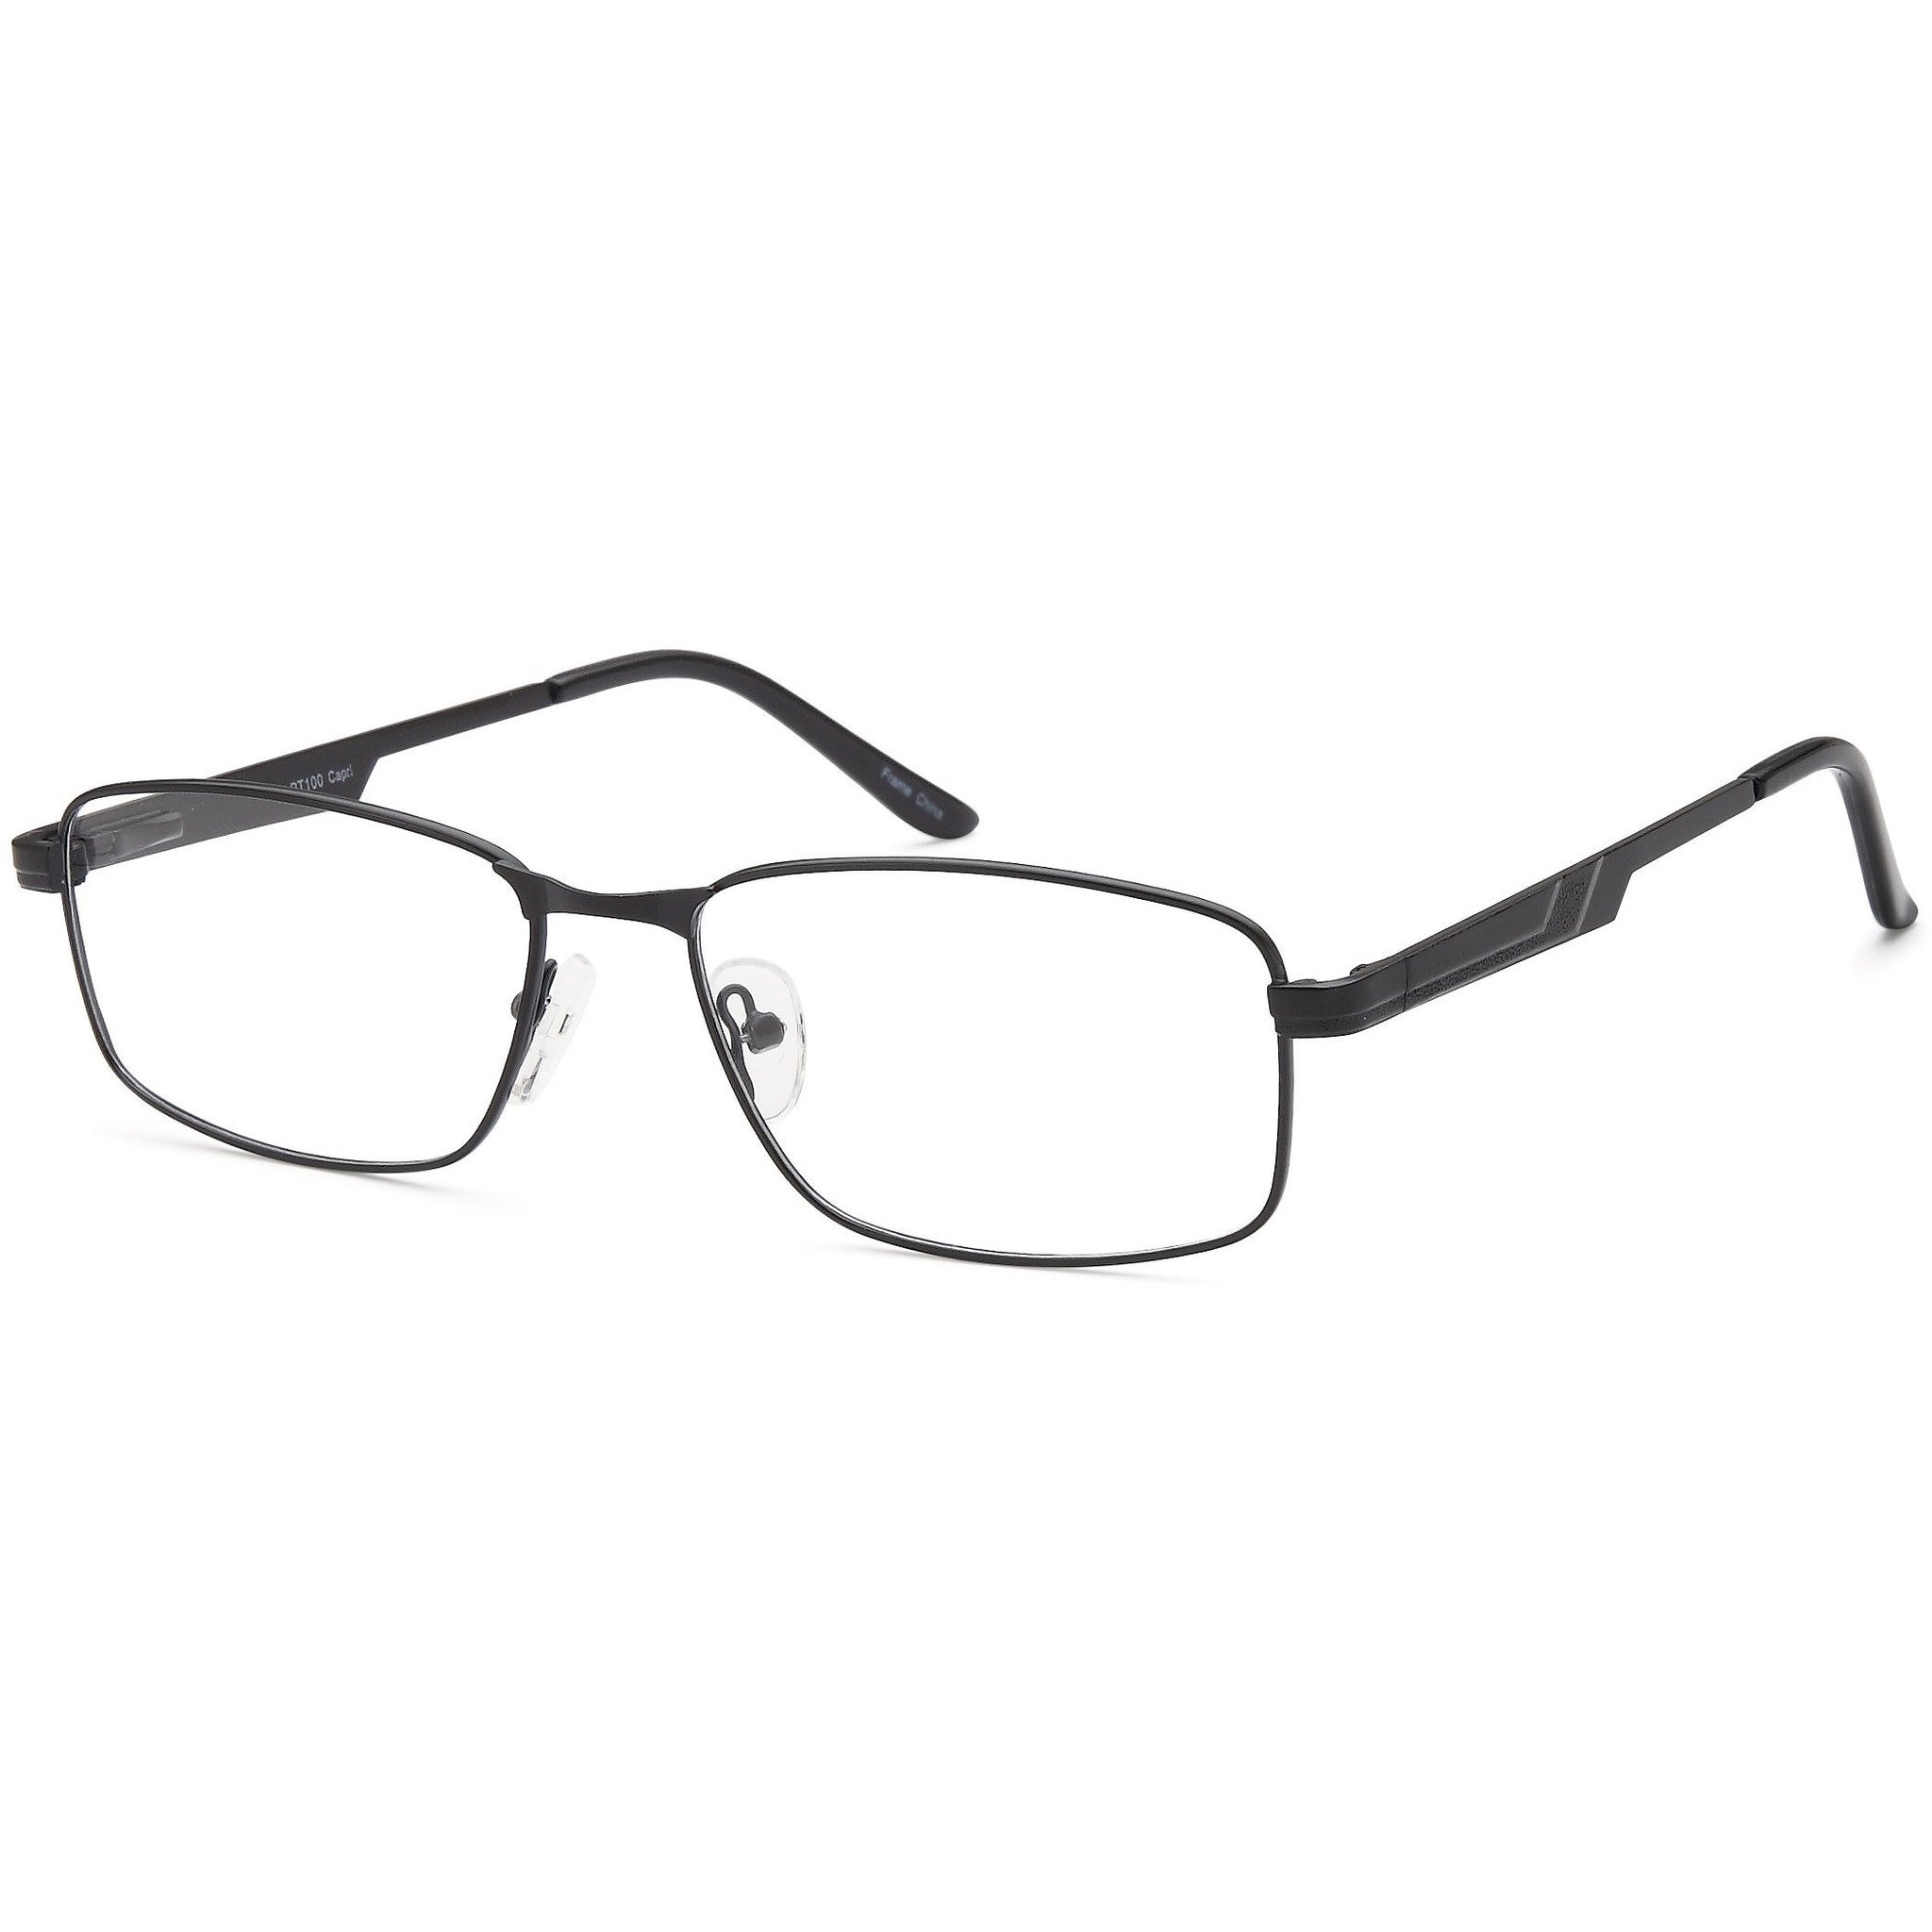 Appletree Prescription Glasses PT 100 Eyeglasses Frame